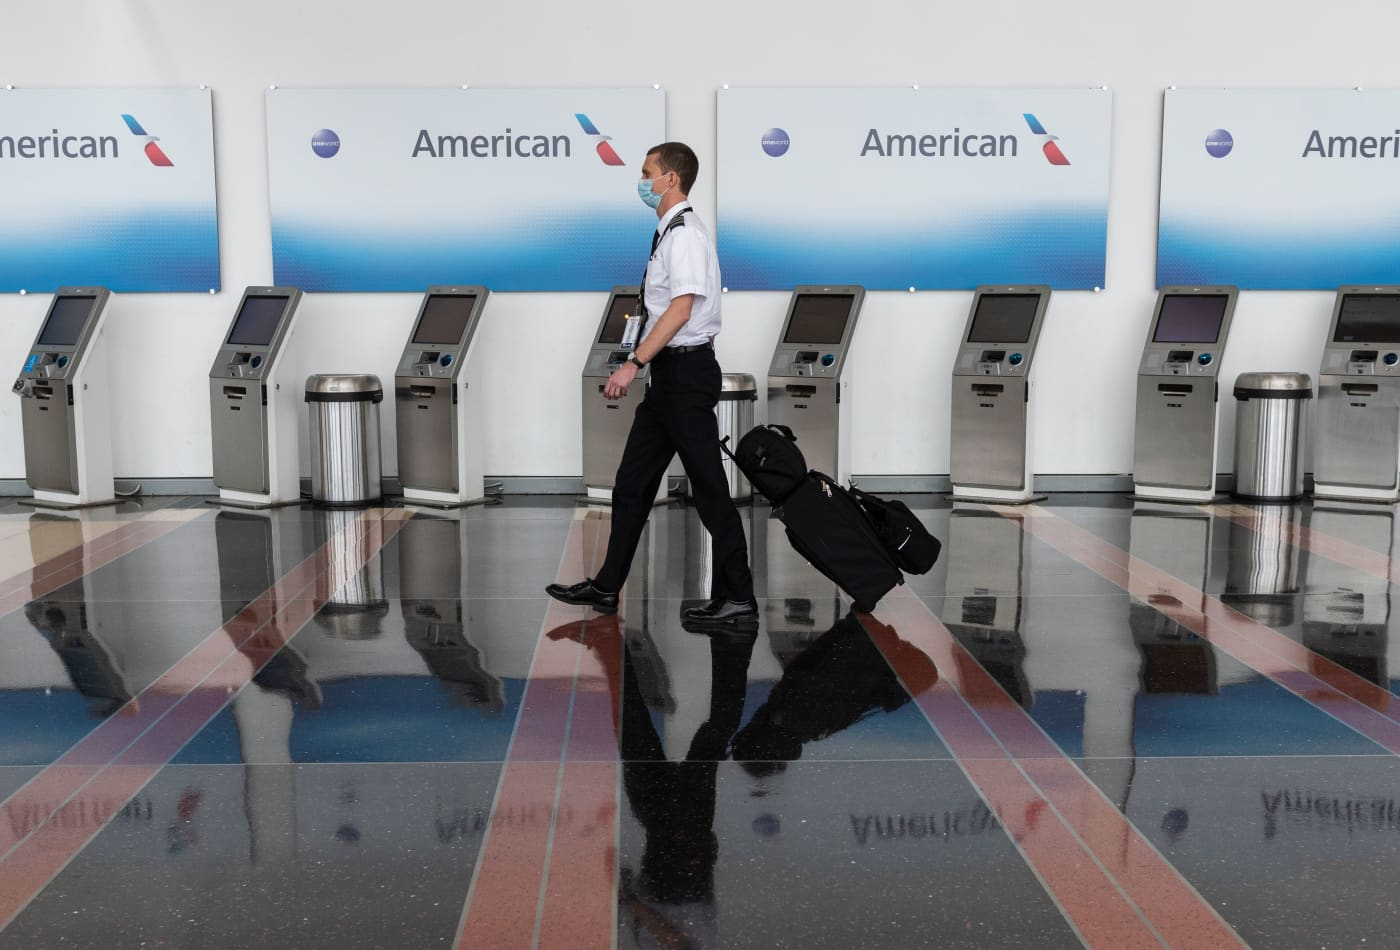 American Airlines warns 25,000 employees about potential job cuts as coronavirus continues to sap demand